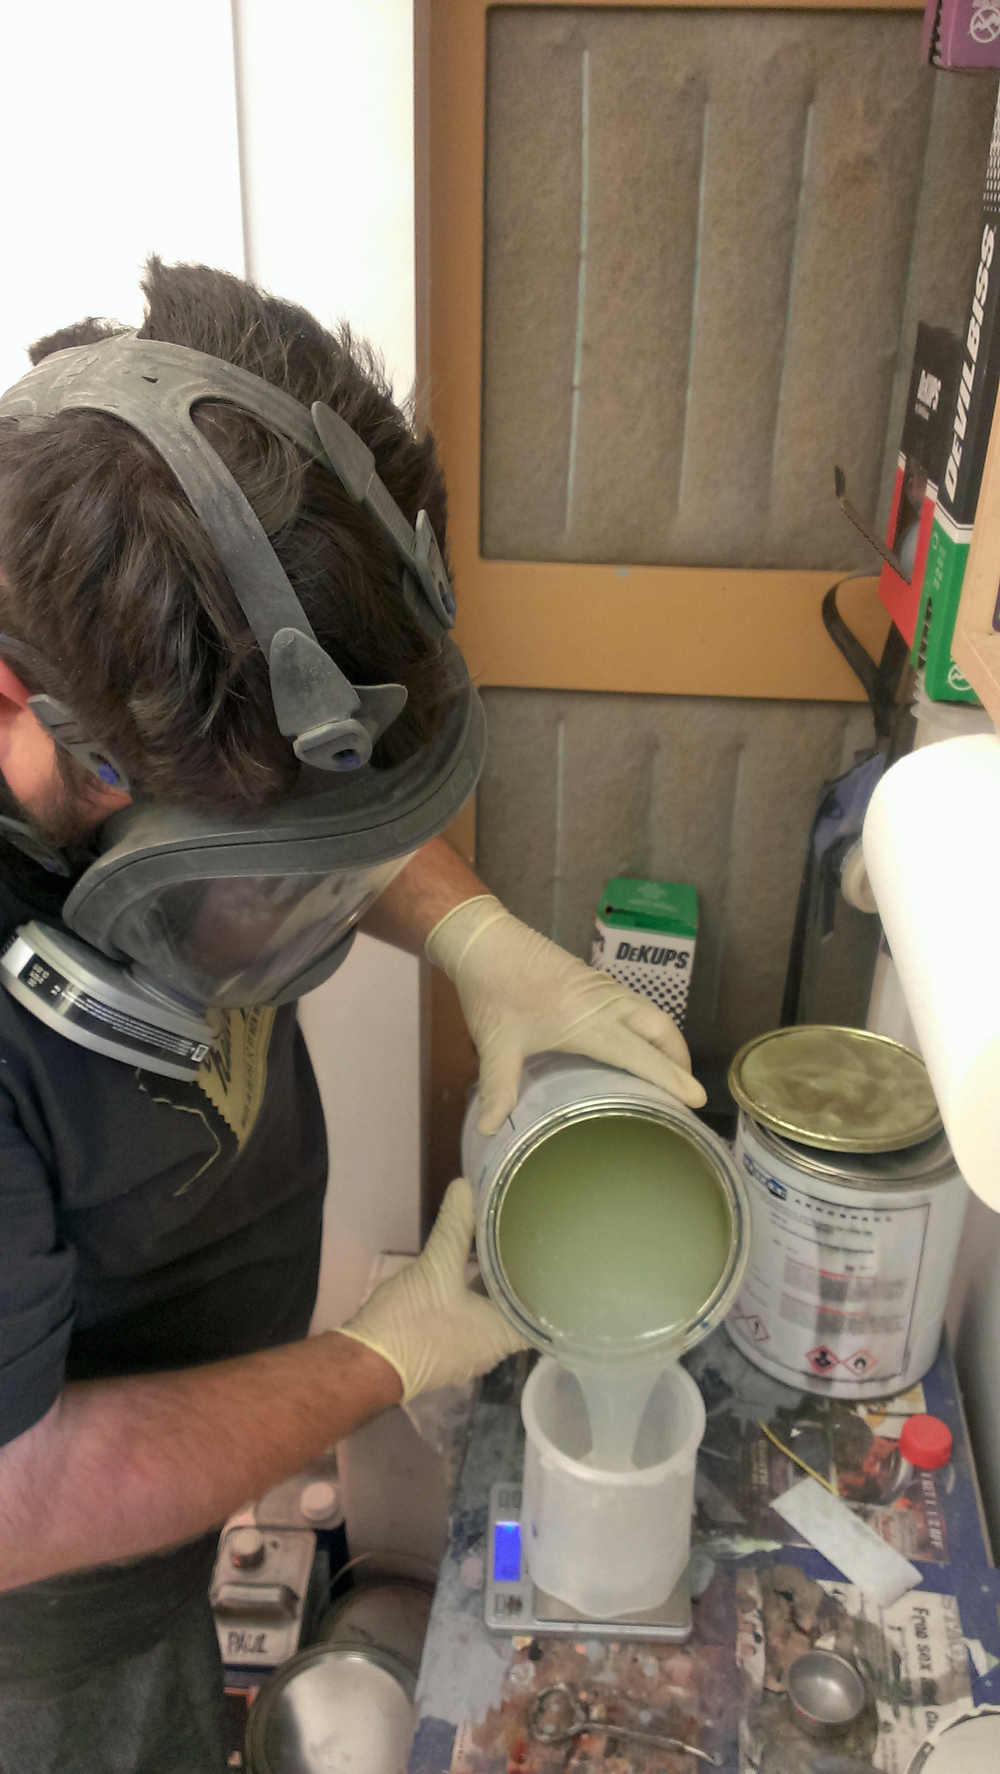 Doug goes full Walter White with strange goo and scales and measuring devices.